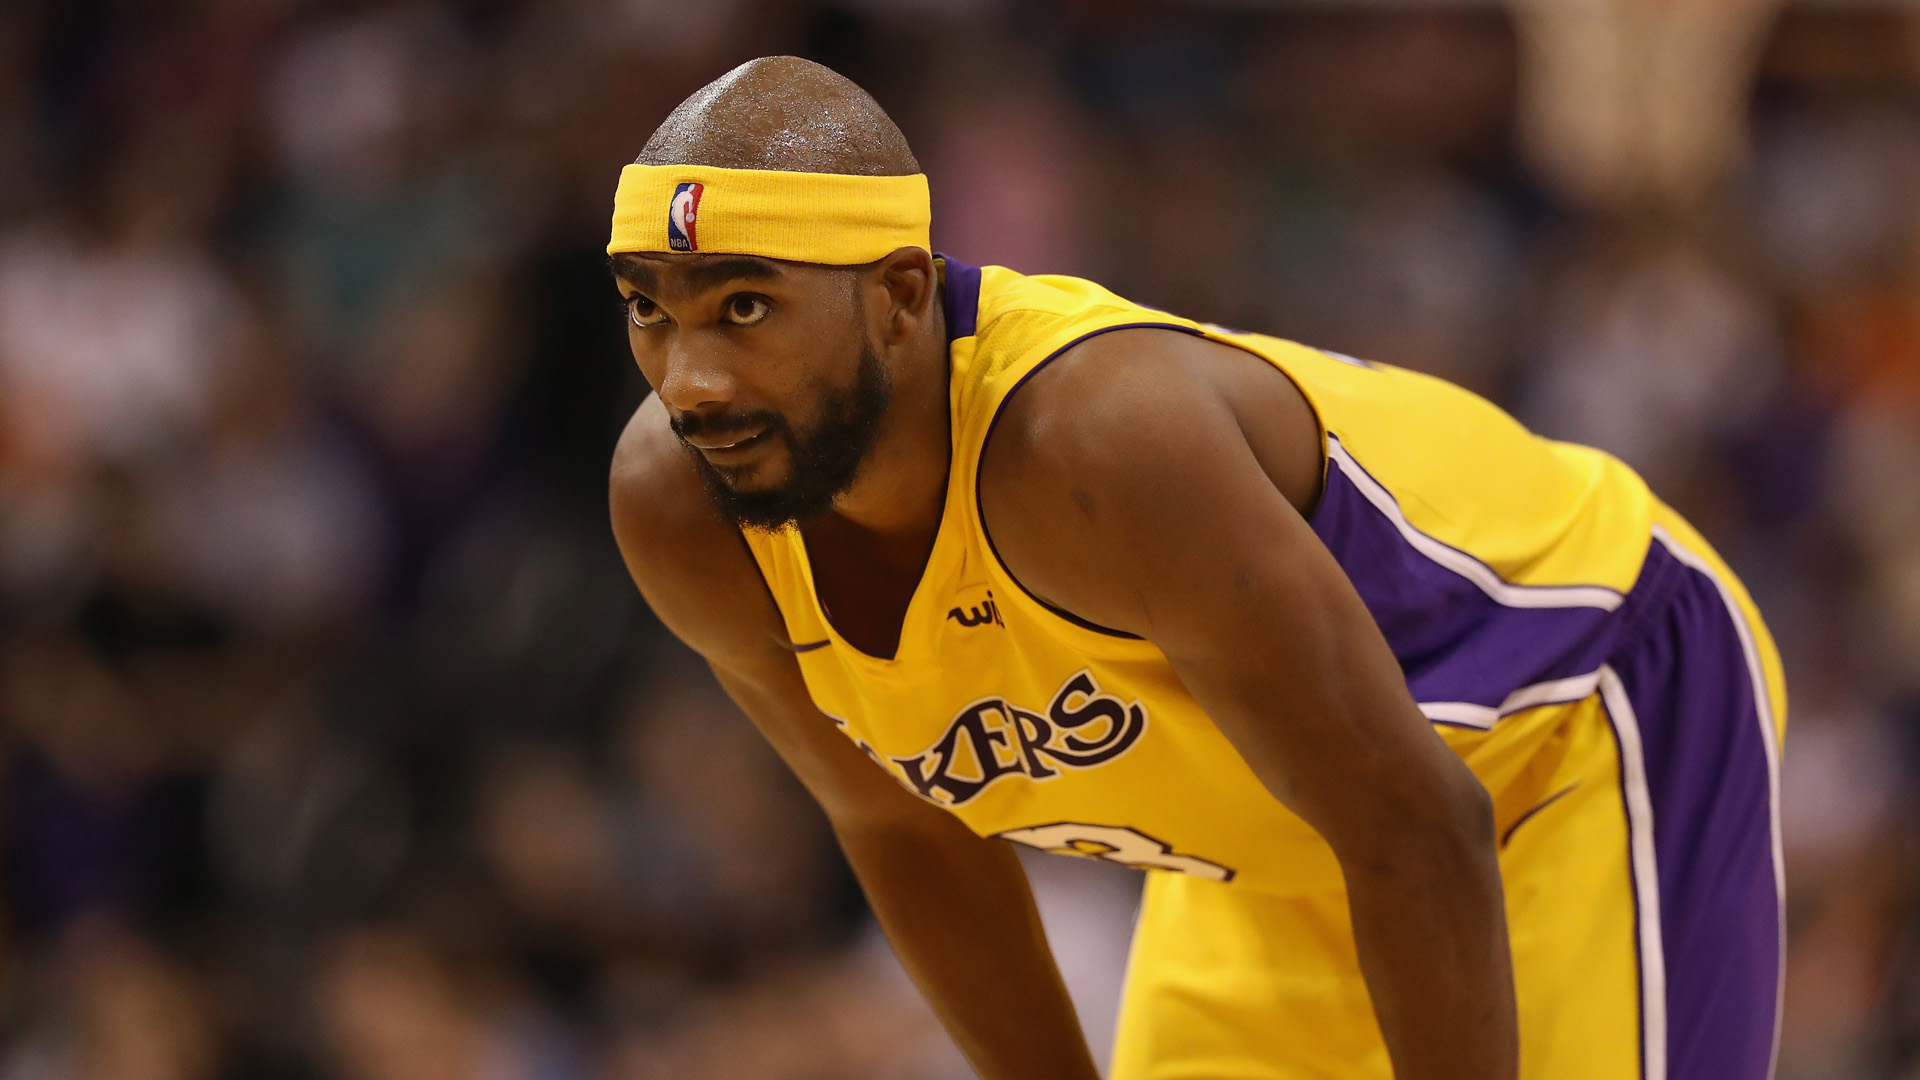 Lakers waive Brewer, lose Hart to hand injury